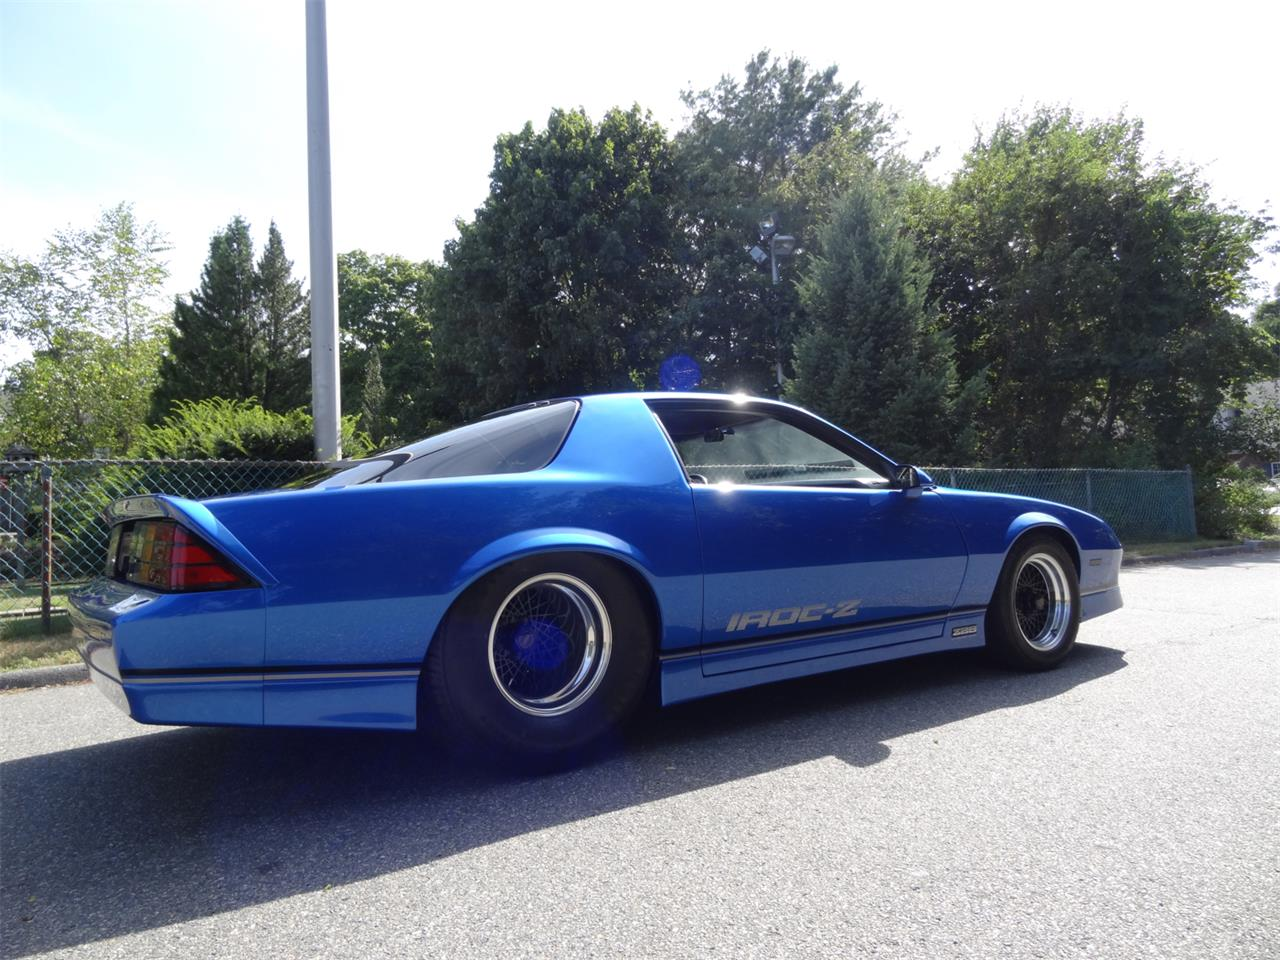 Large Picture of 1983 Chevrolet Camaro IROC Z28 - $30,000.00 Offered by a Private Seller - QUEA